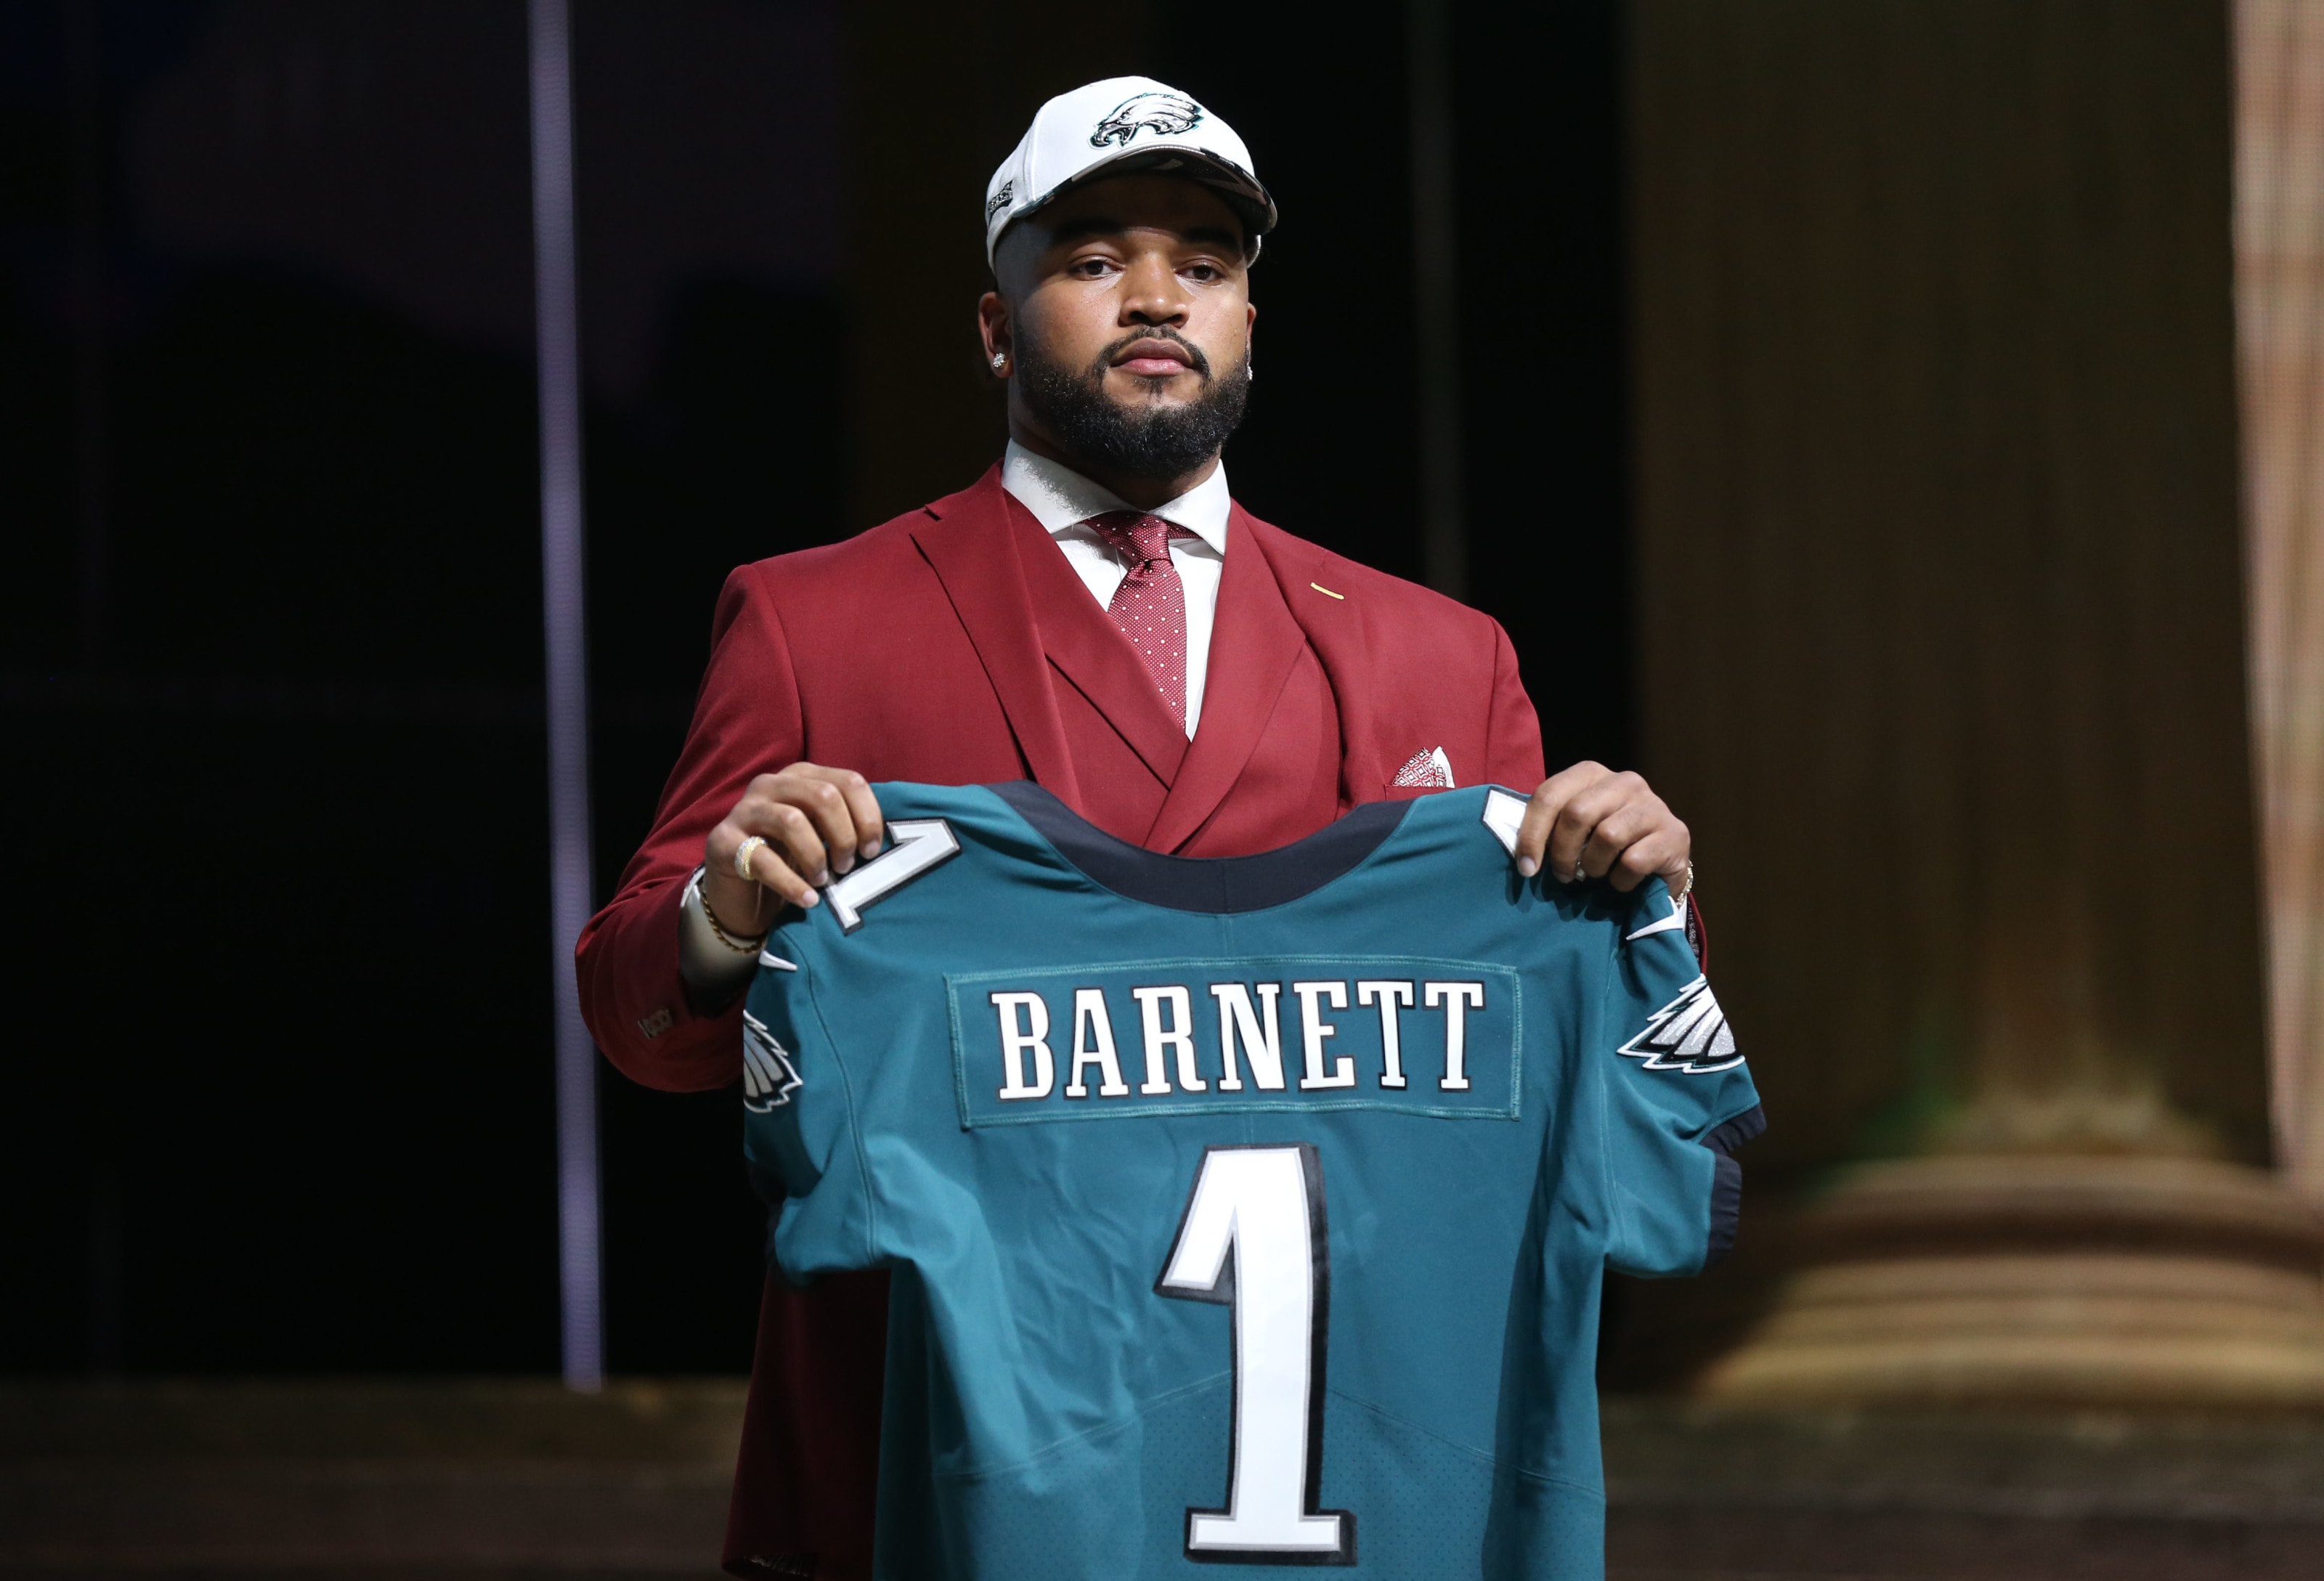 Derek Barnett, Philadelphia Eagles